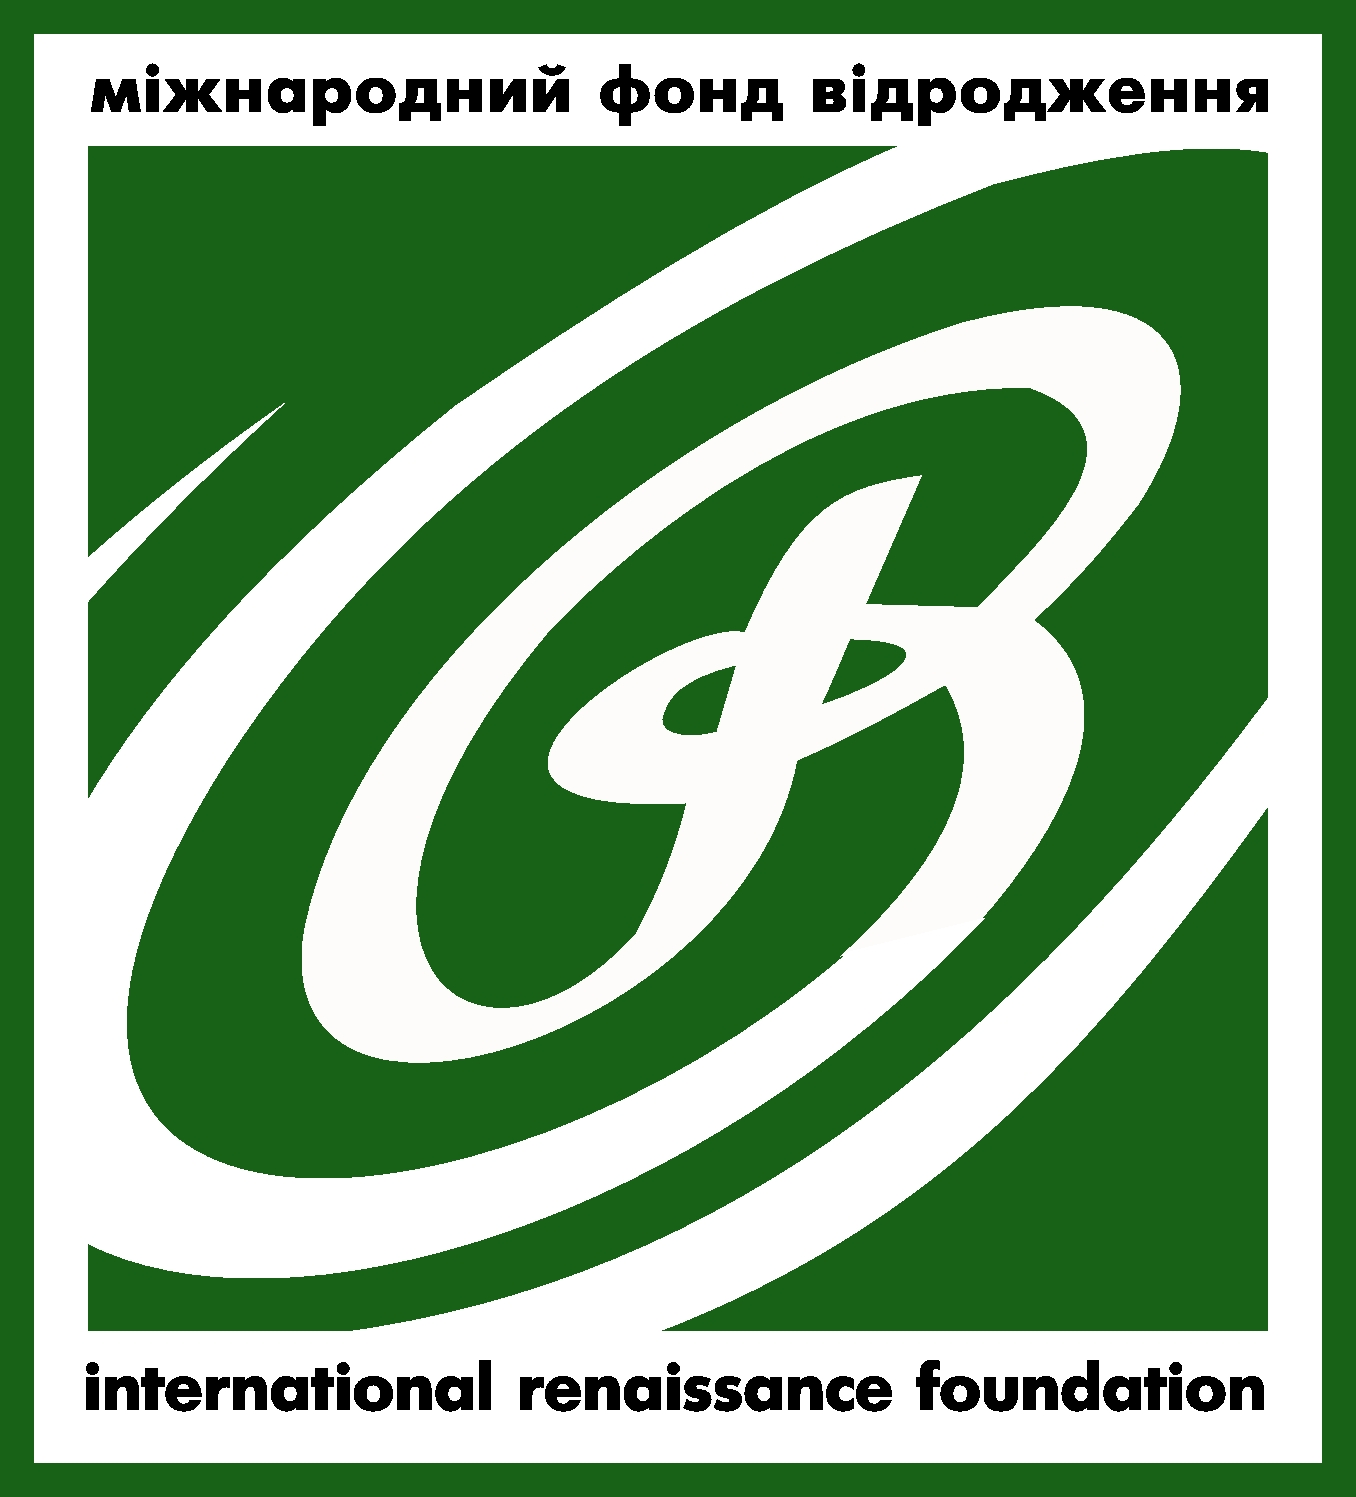 logo_green_big